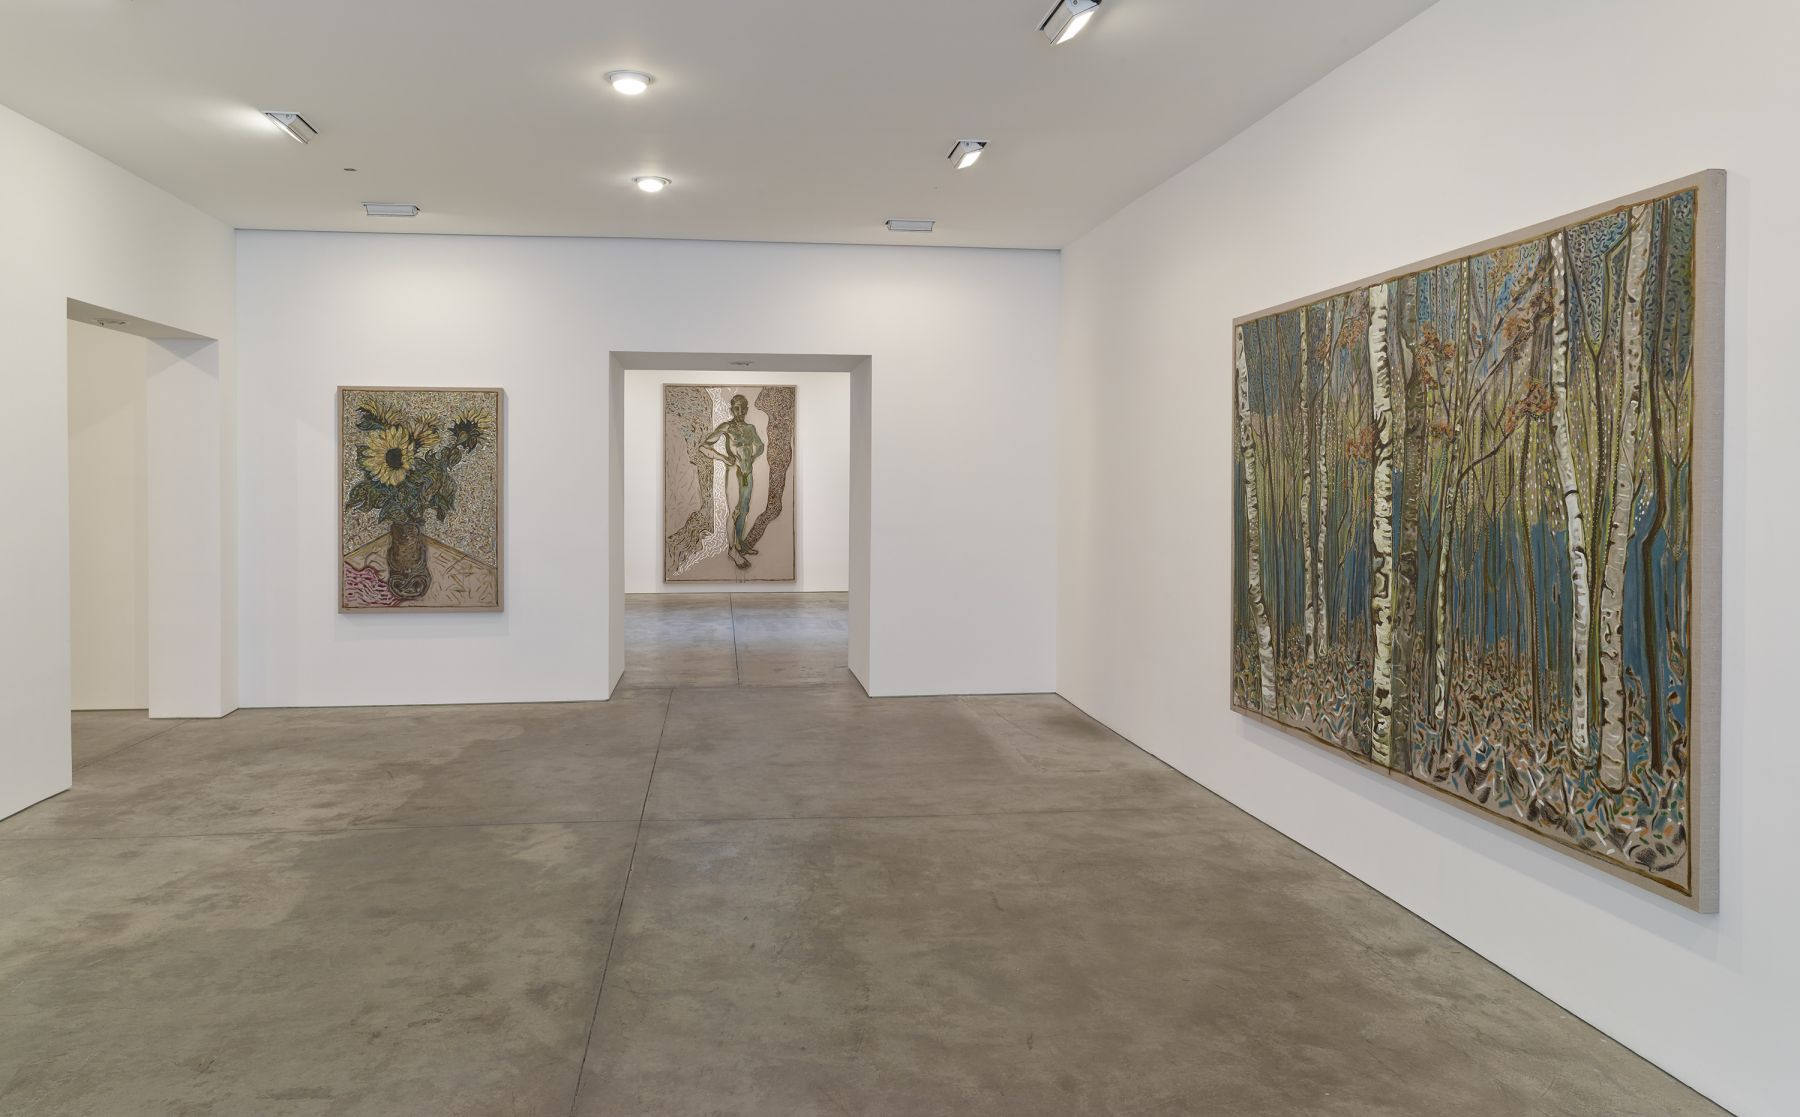 比利·æŸ¥çˆ¾è¿ªæ–¯: flowers, nudes and birch trees: New Paintings 2015